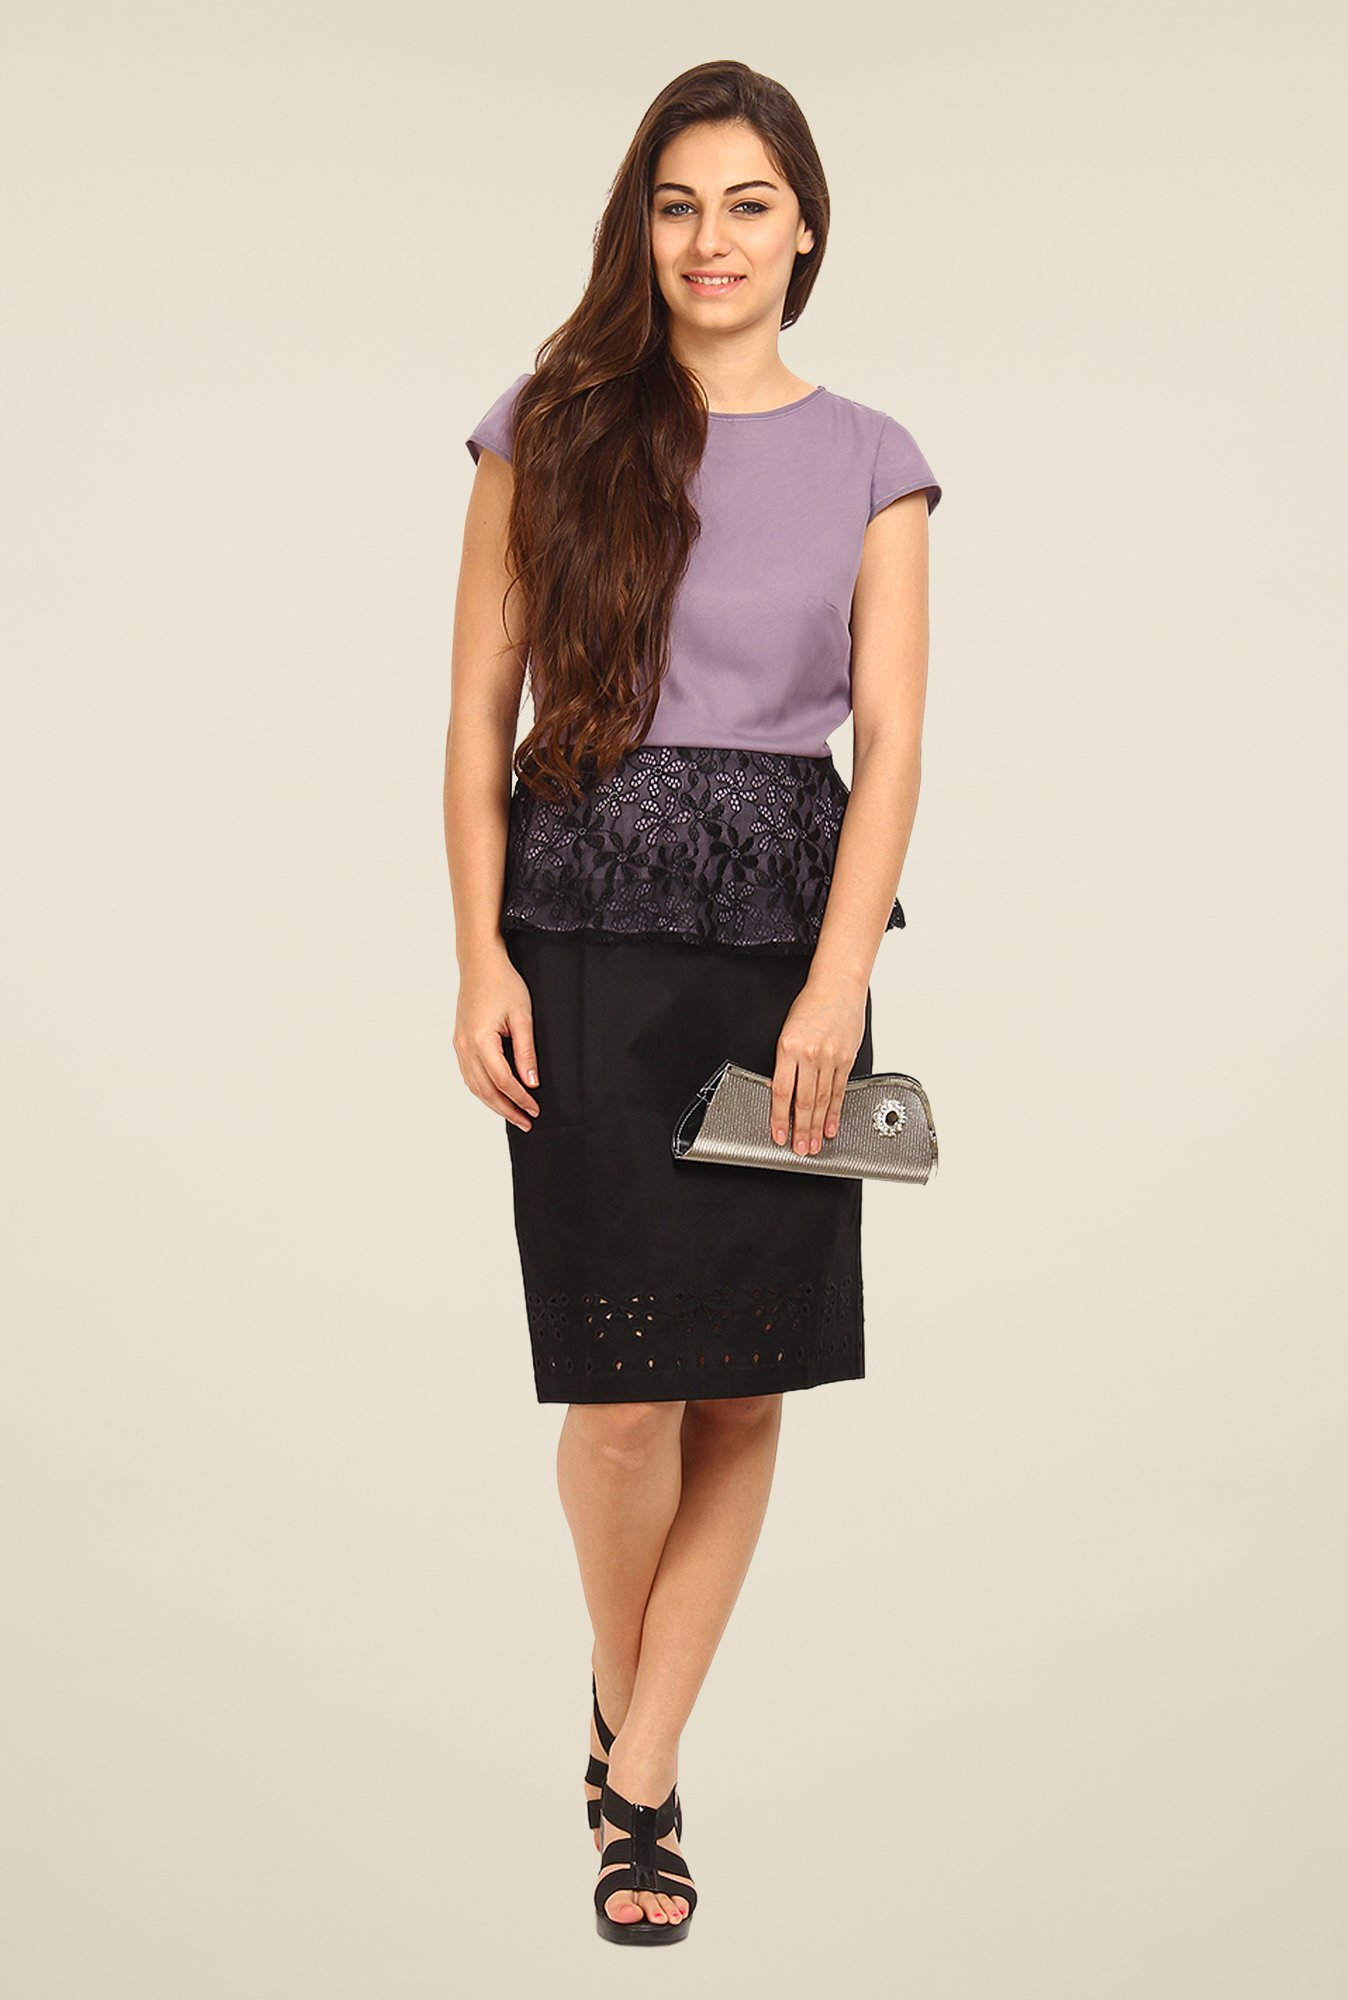 Avirate Lavender Solid Top